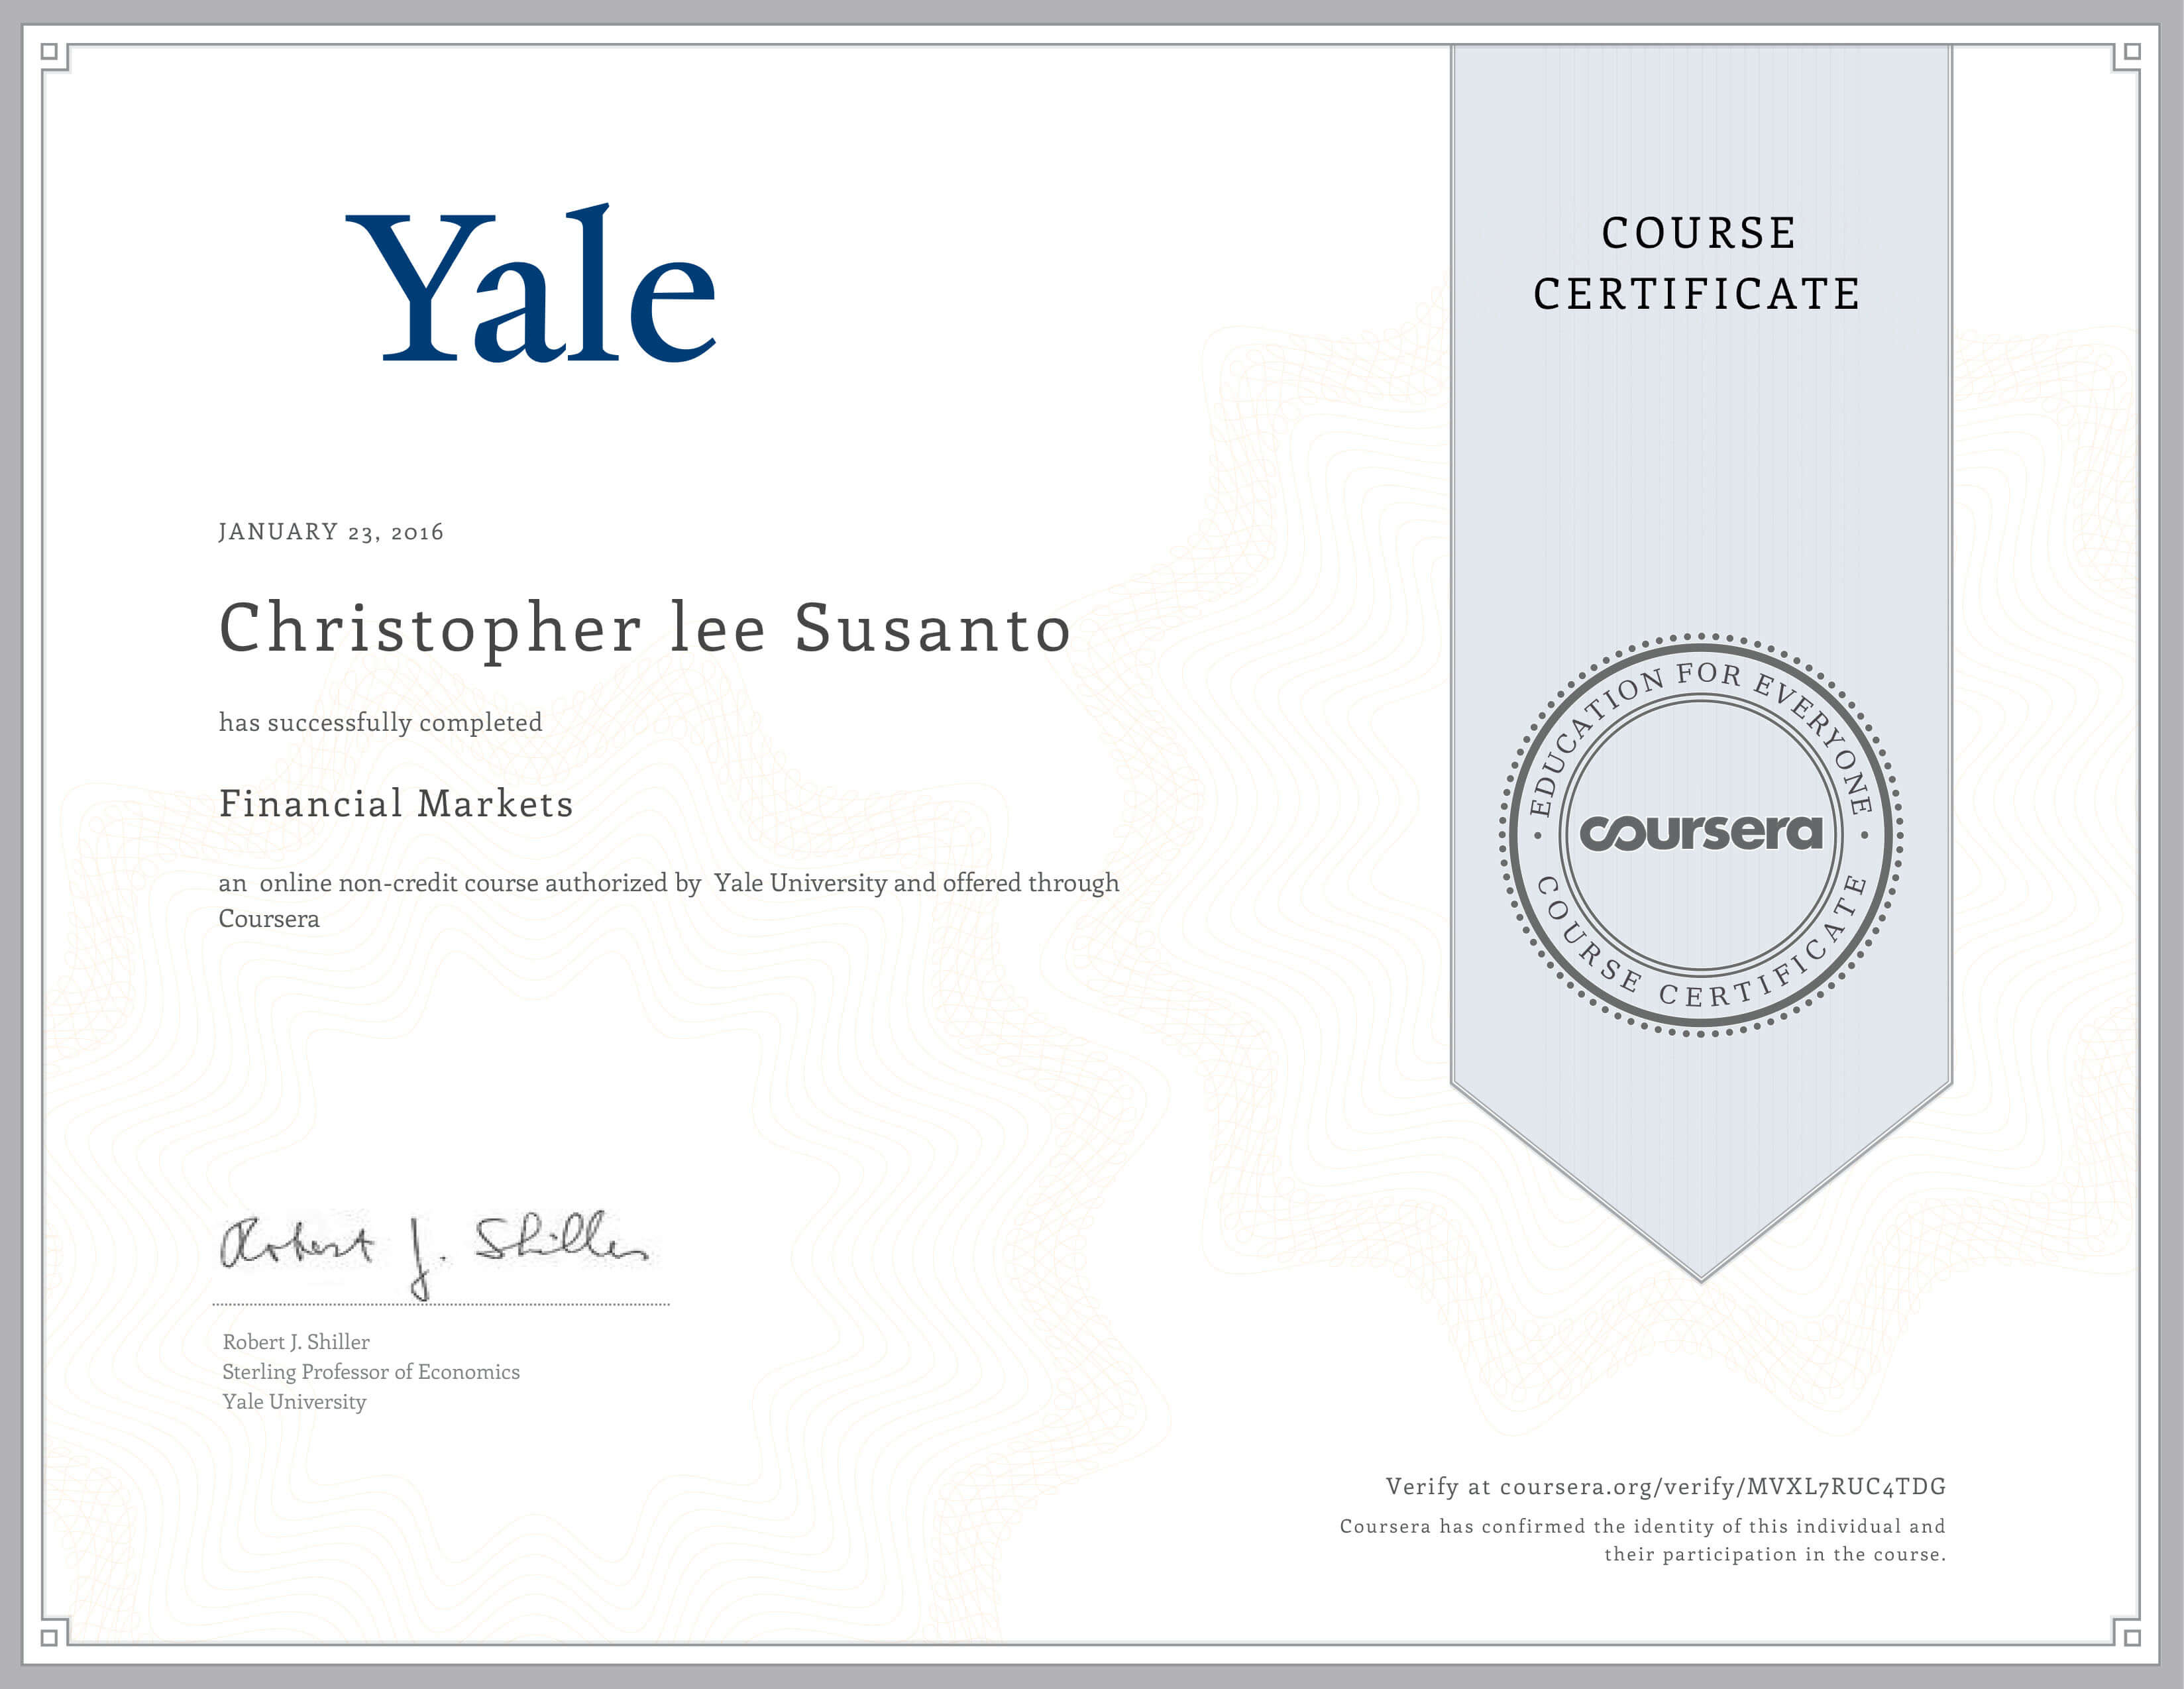 Completed Financial Markets Course by Yale University